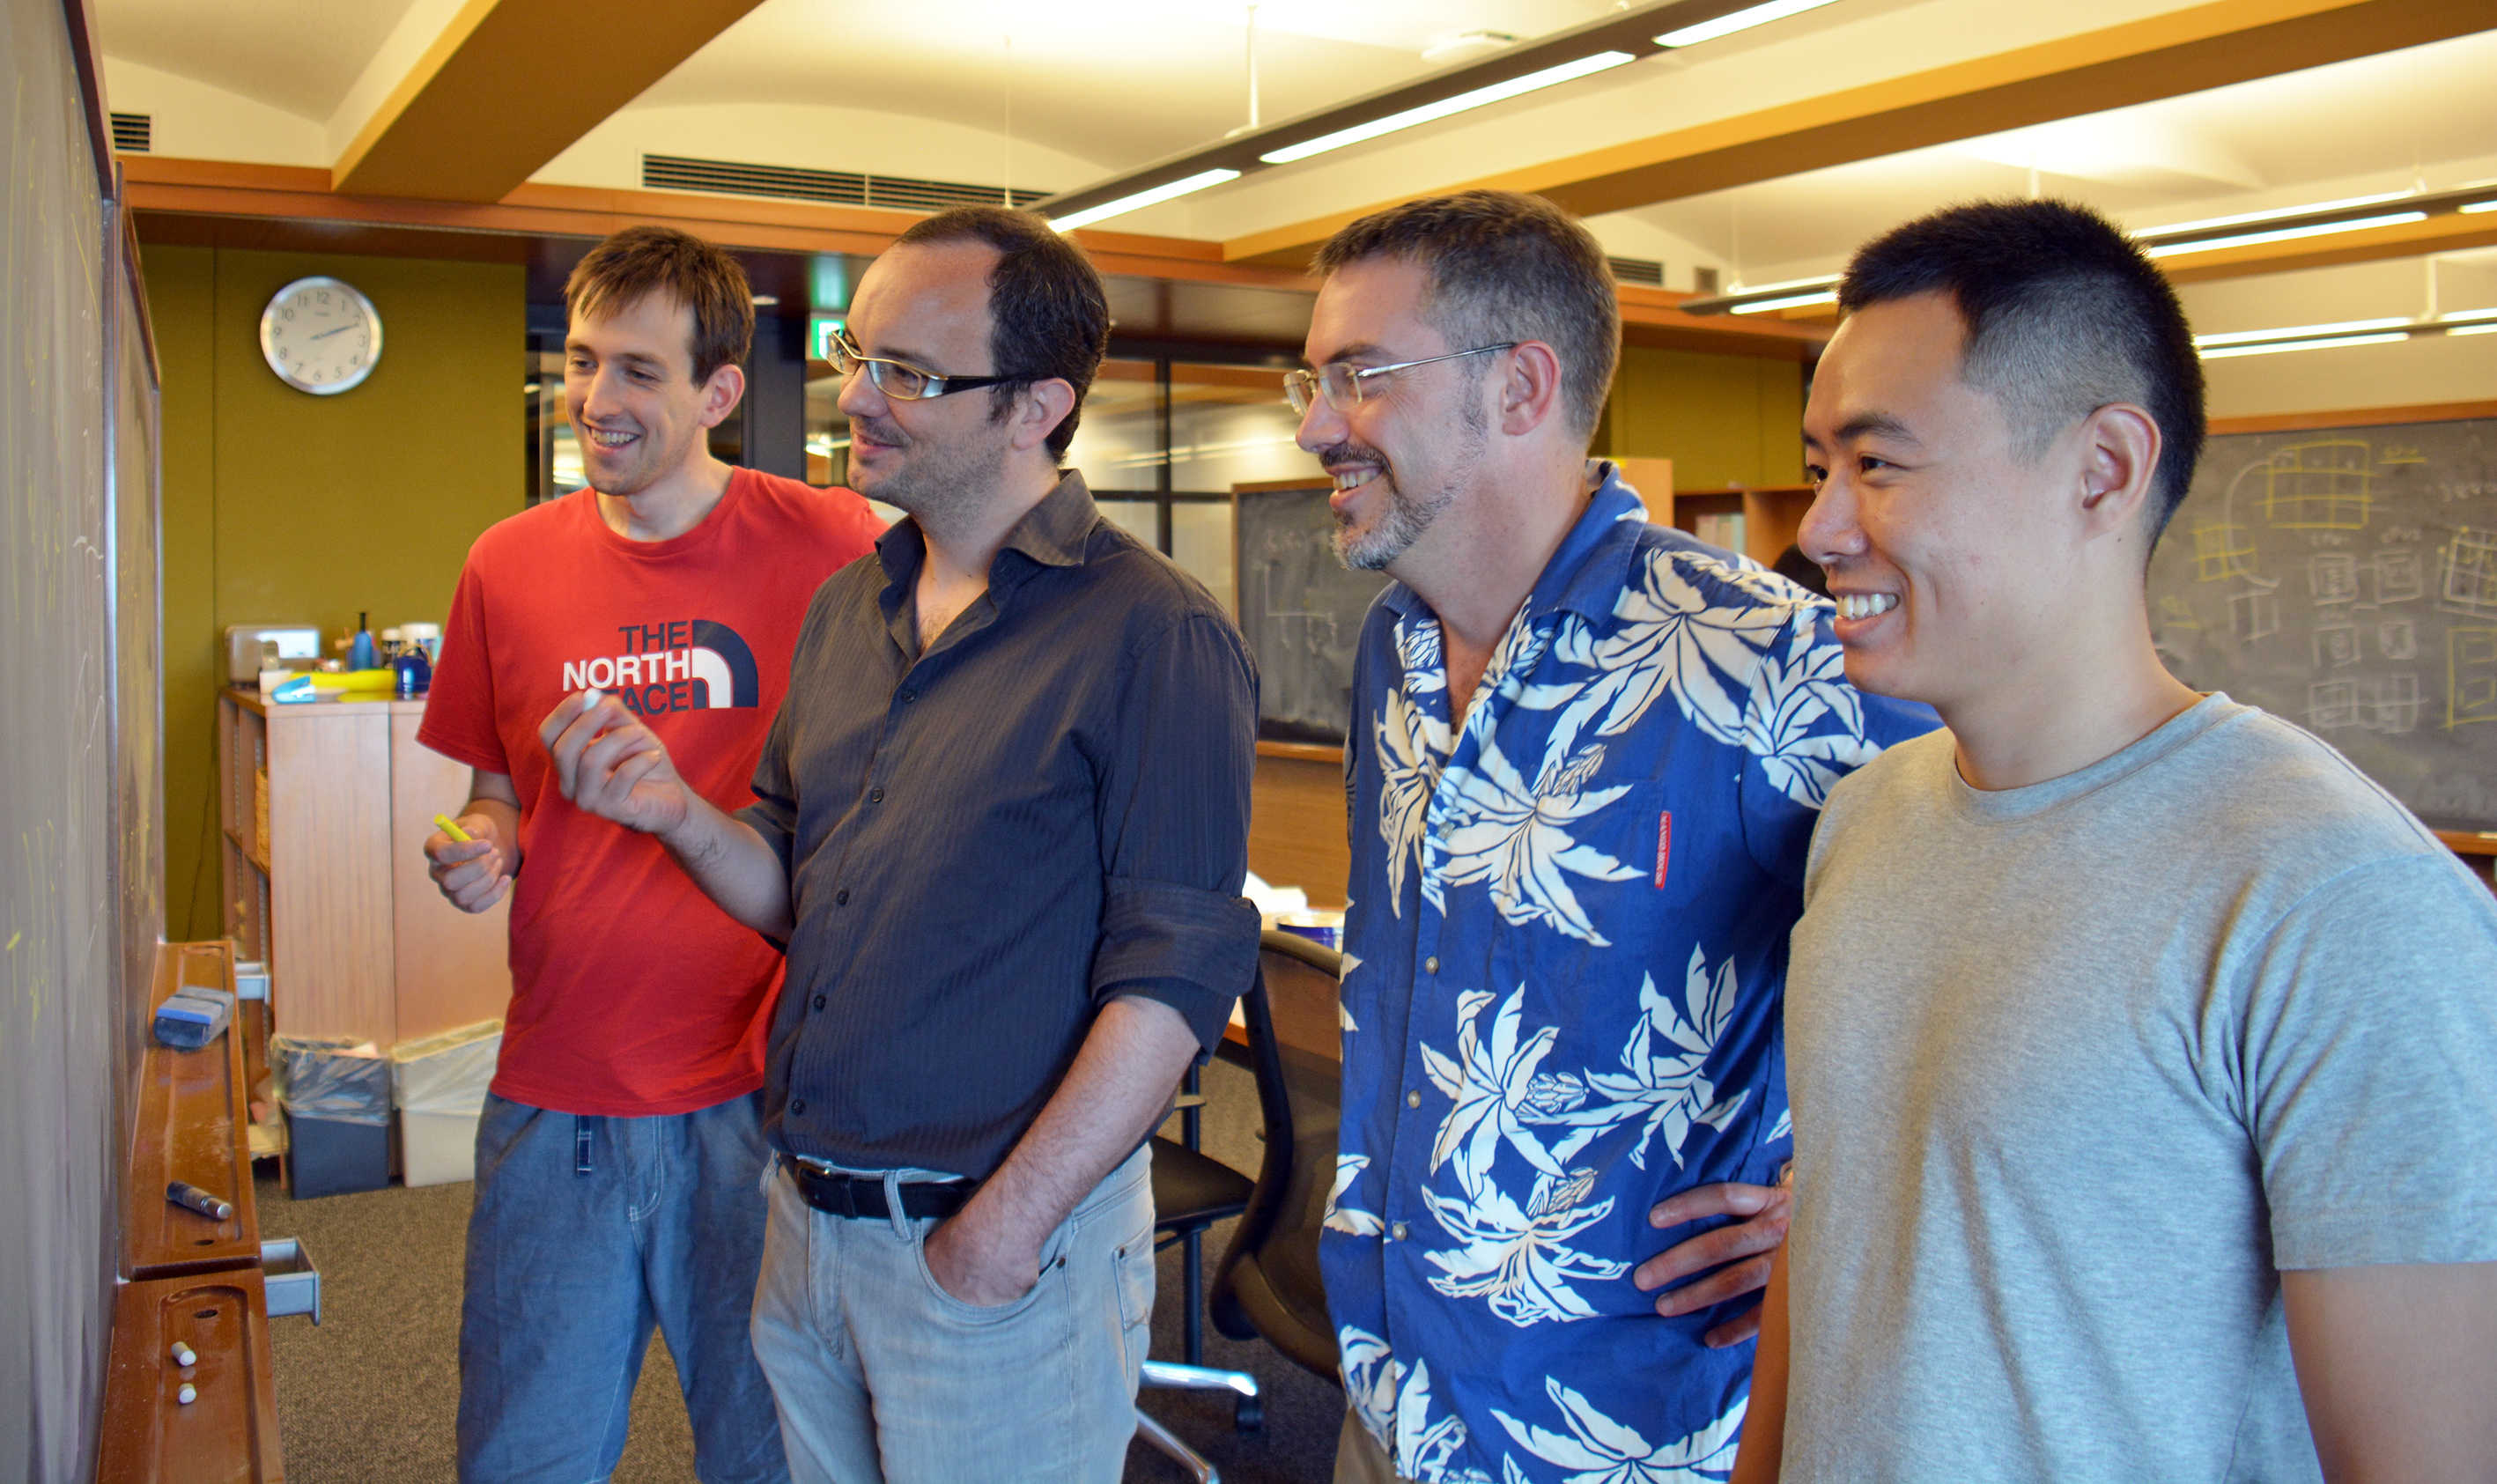 Members of the OIST Theory of Quantum Matter Unit. From the left: Dr Owen Benton, Dr Ludo Jaubert, Prof Nic Shannon, and Mr Han Yan